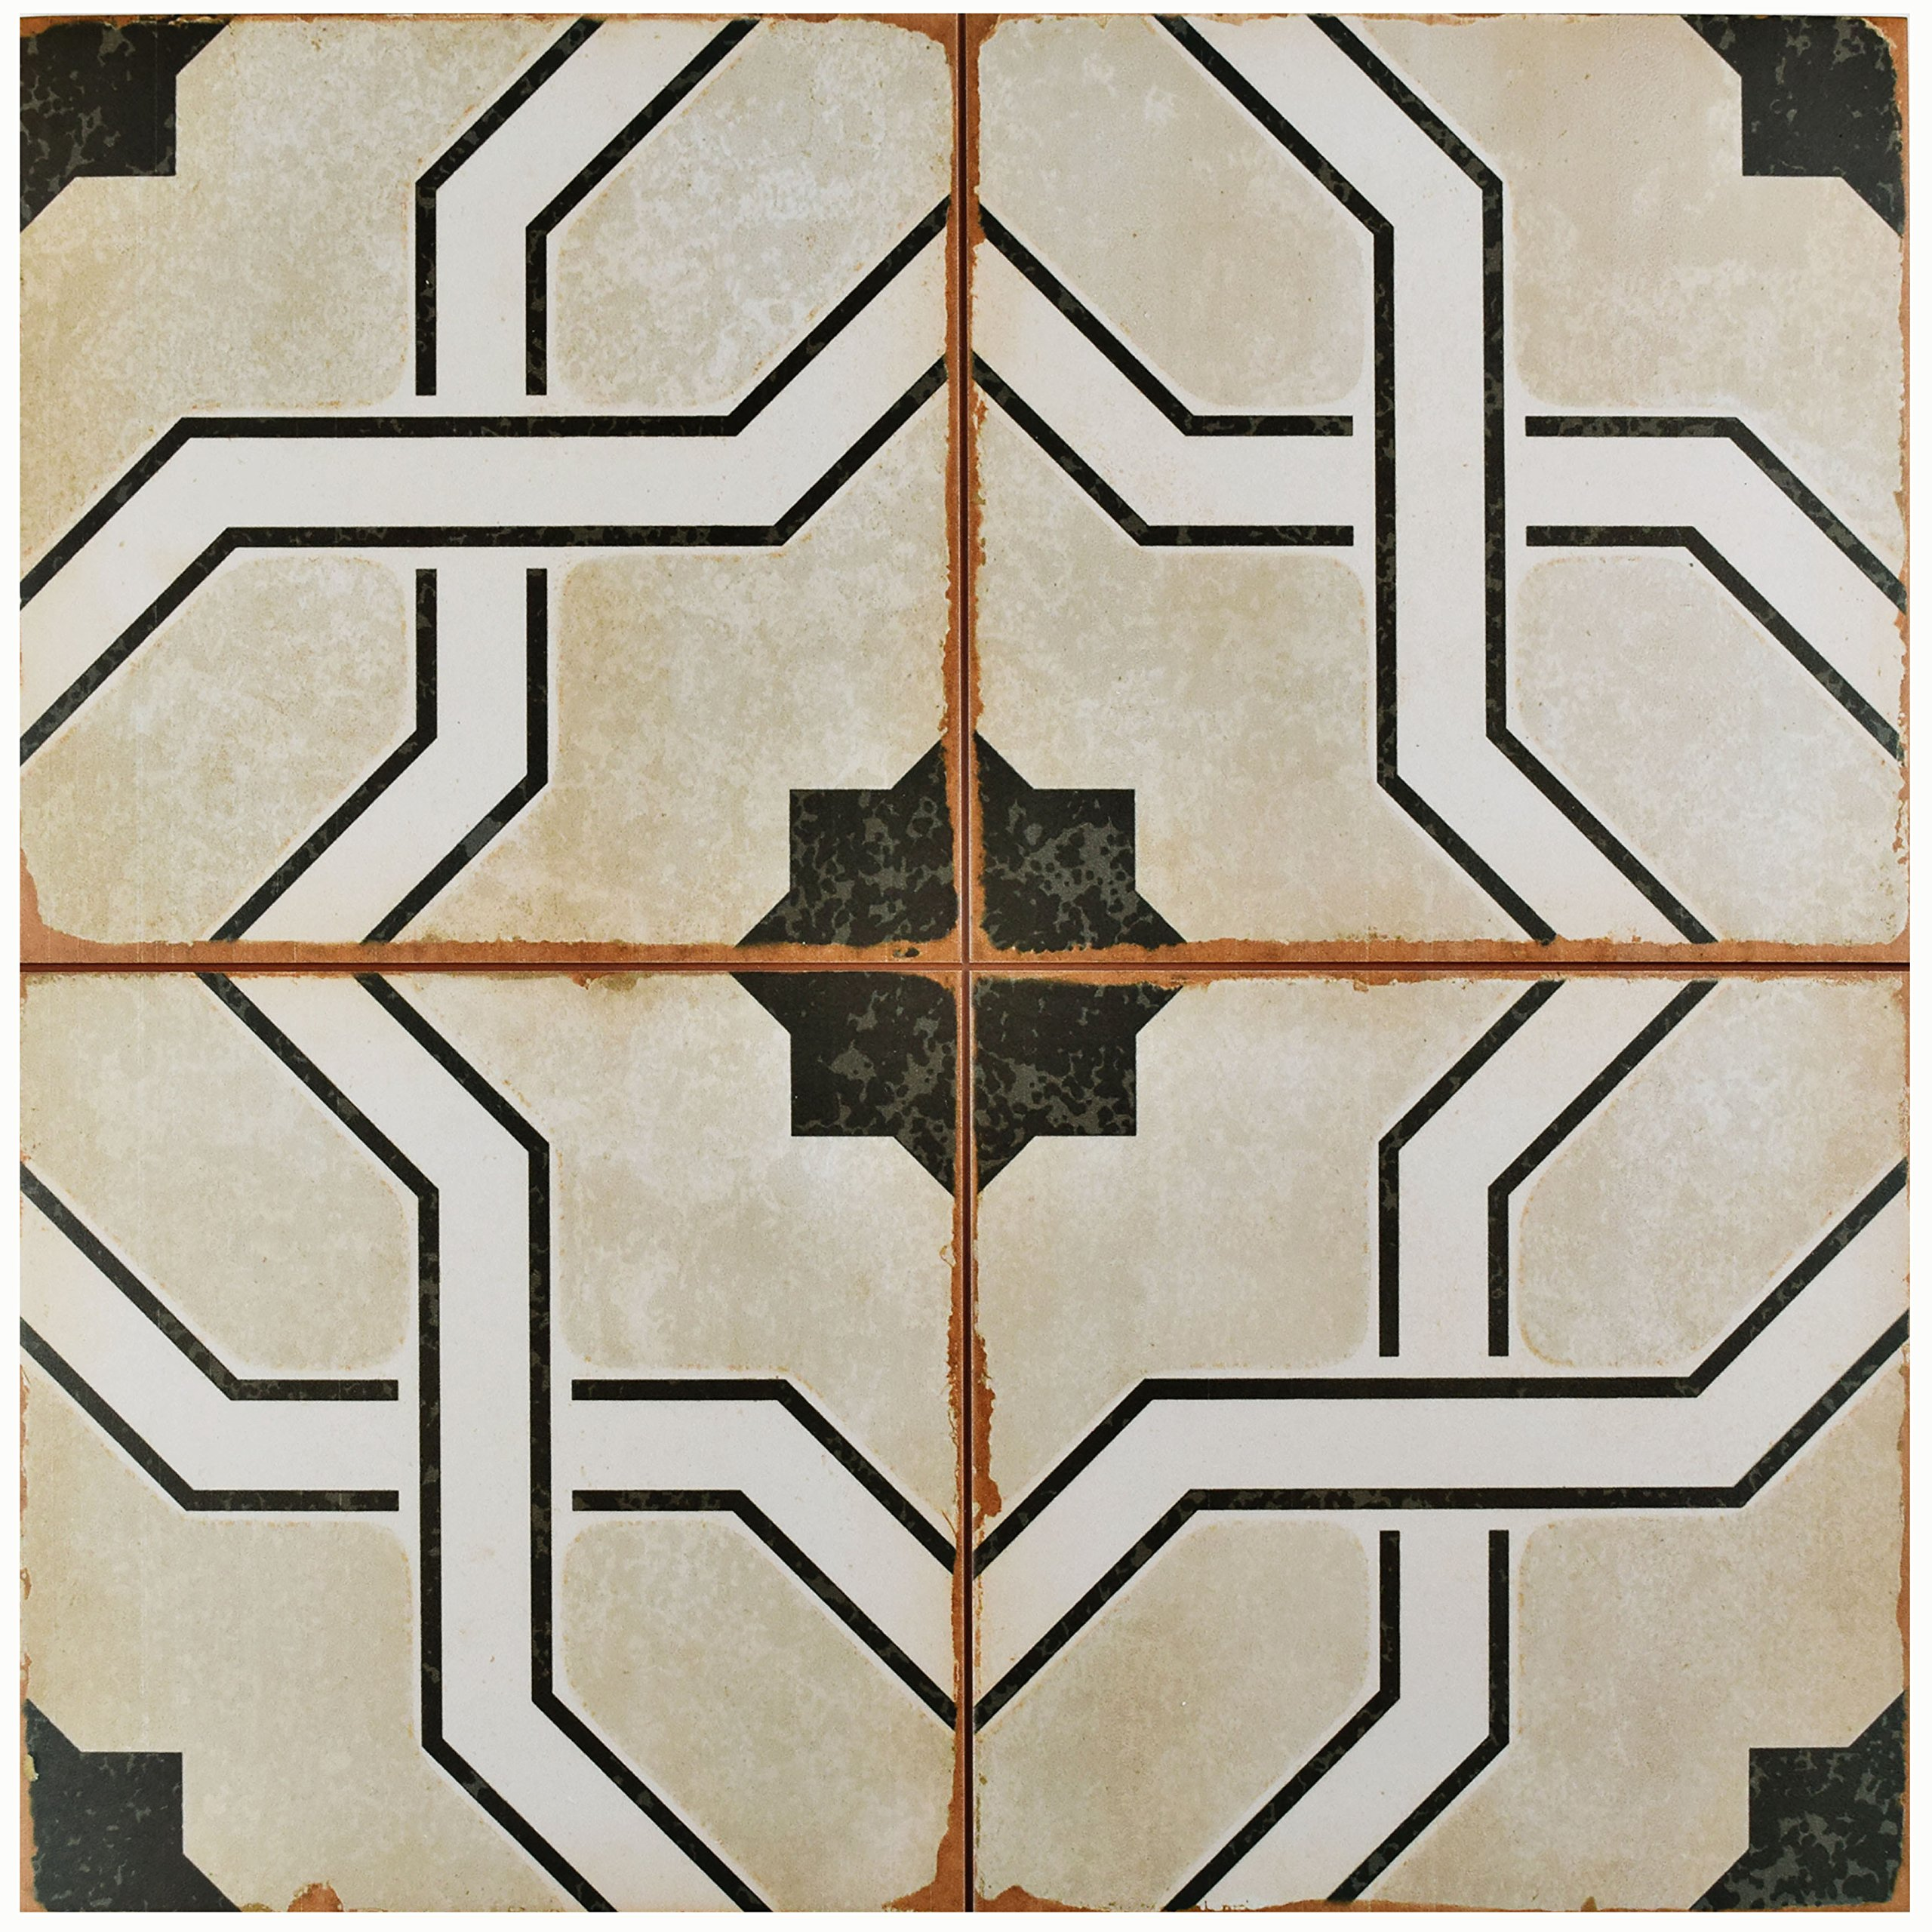 SomerTile FPECORDO Argentina Ceramic Floor and Wall Tile, 17.625'' x 17.625'', Beige/Brown/White/Black